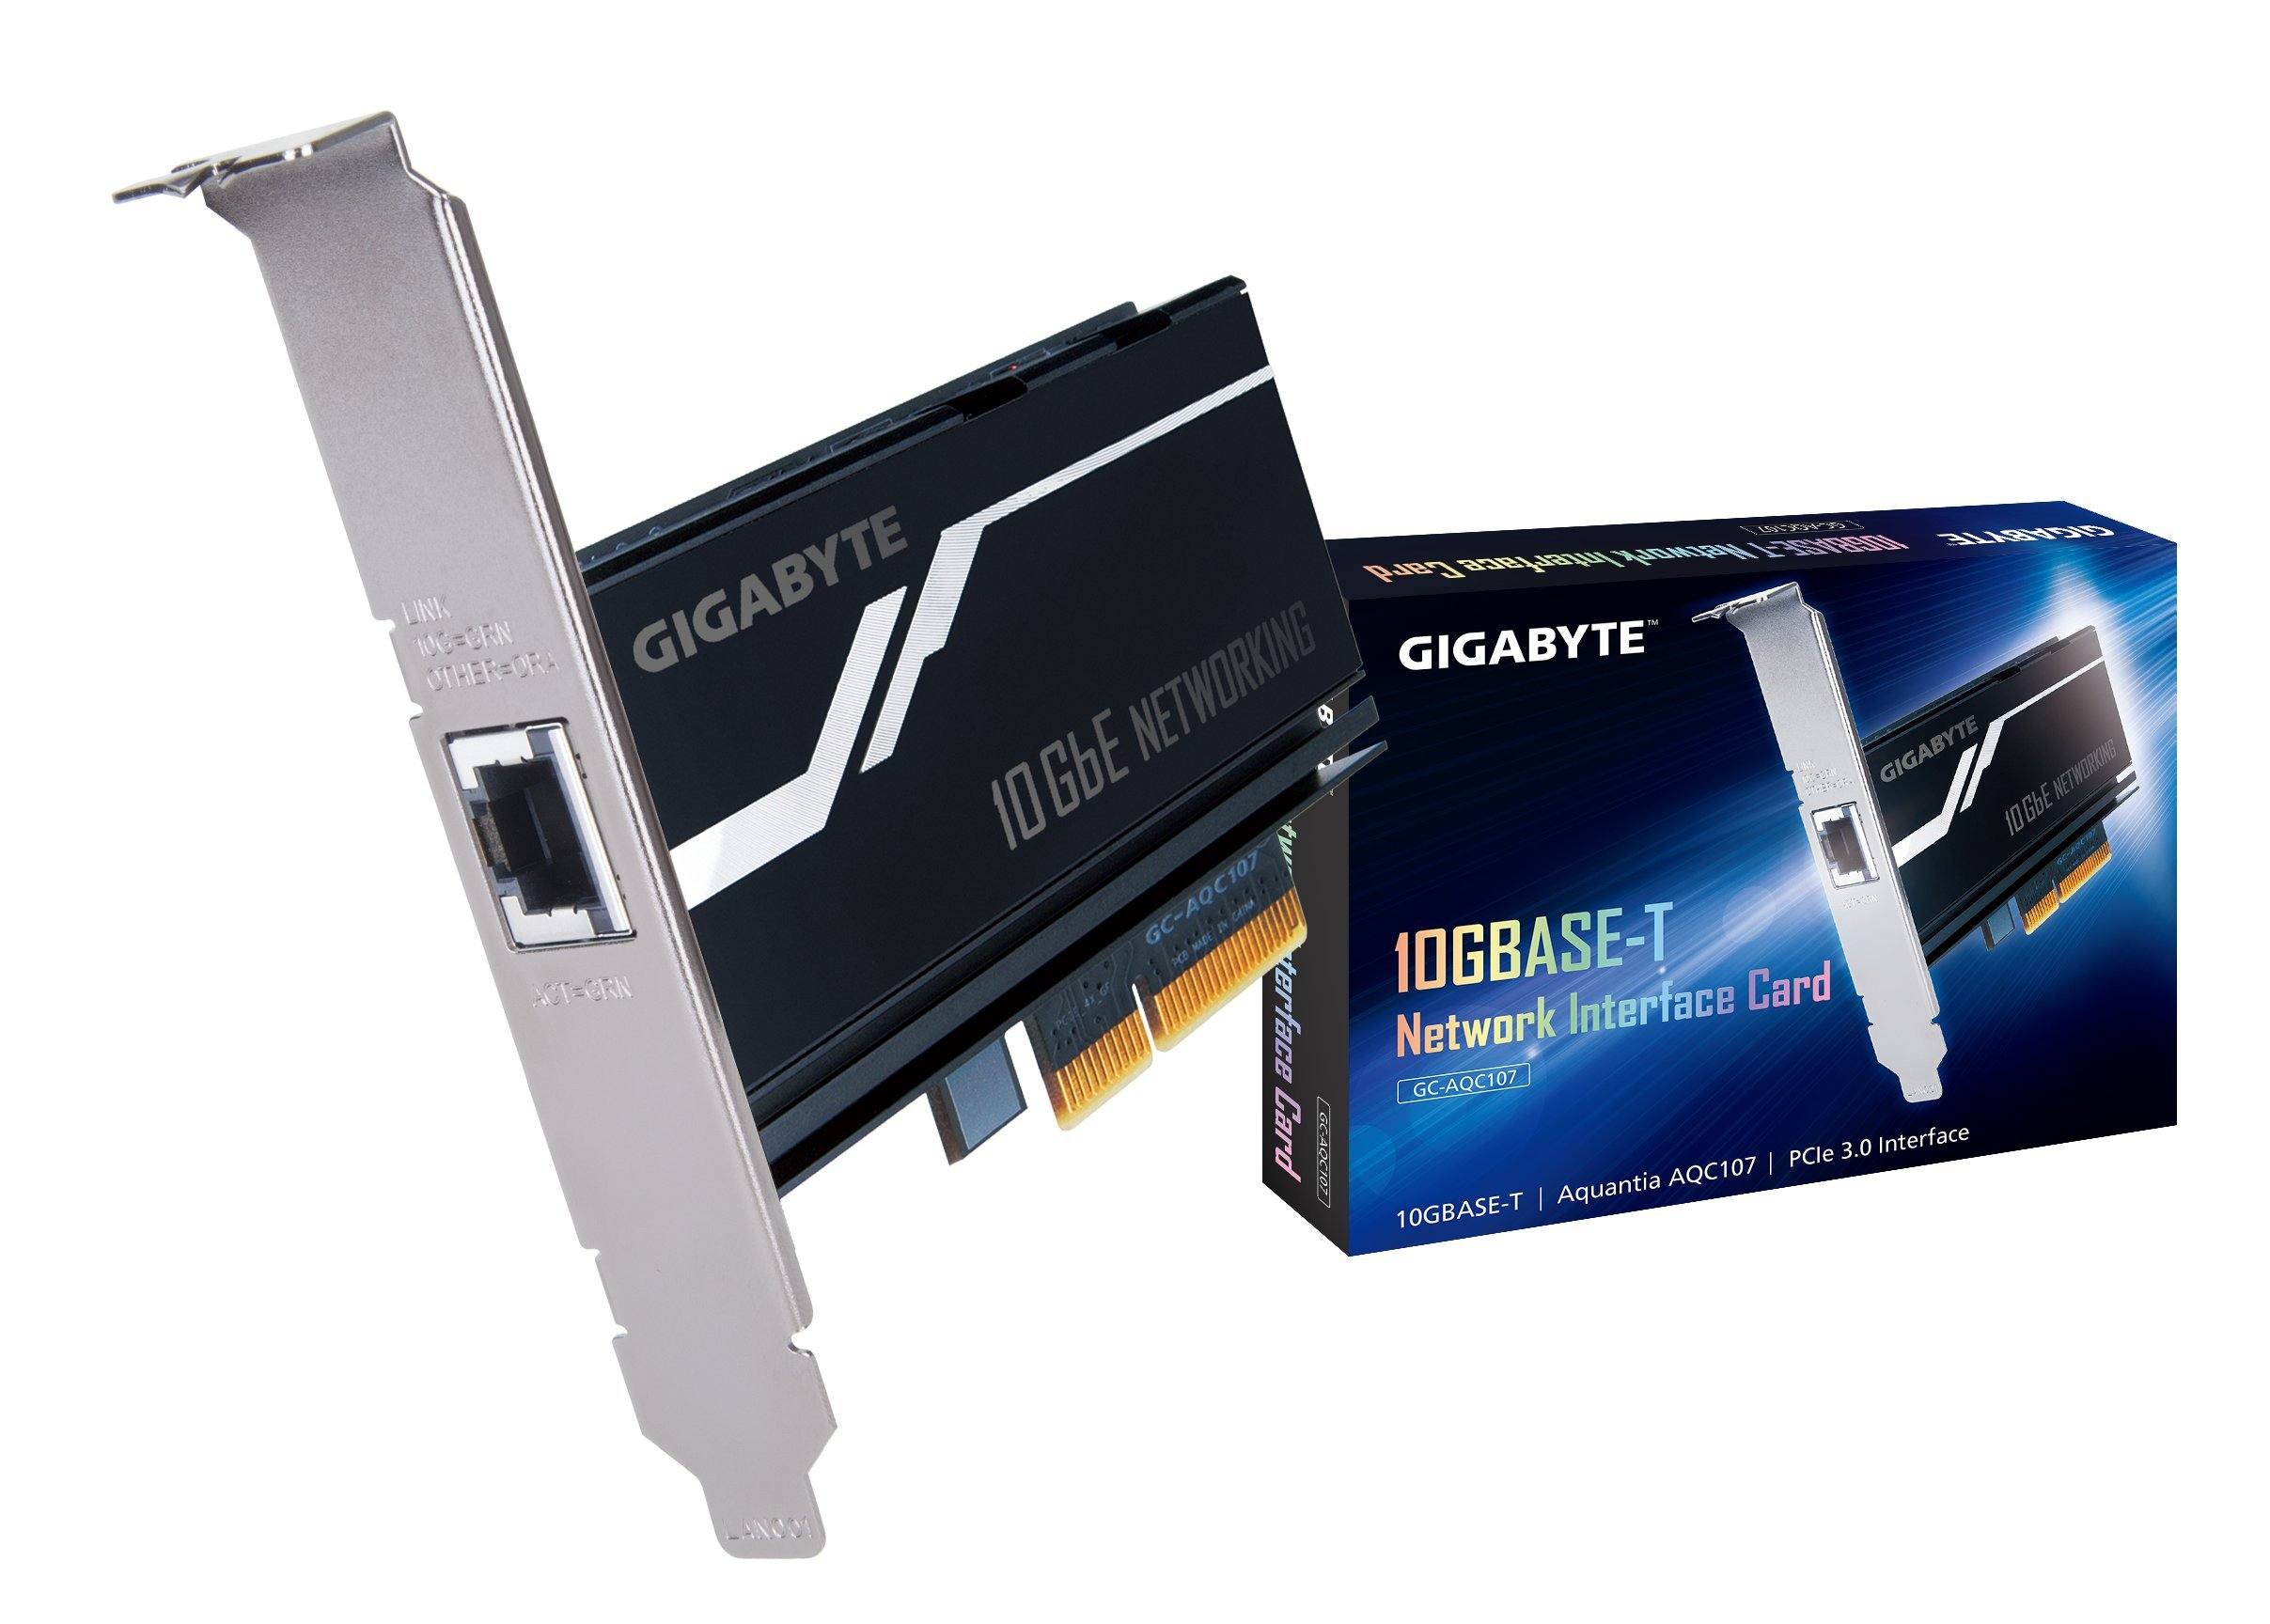 Gigabyte GC-AQC107 (10GbE Network Adaptor Pci-E X4 Card with RJ-45 Port) by Gigabyte